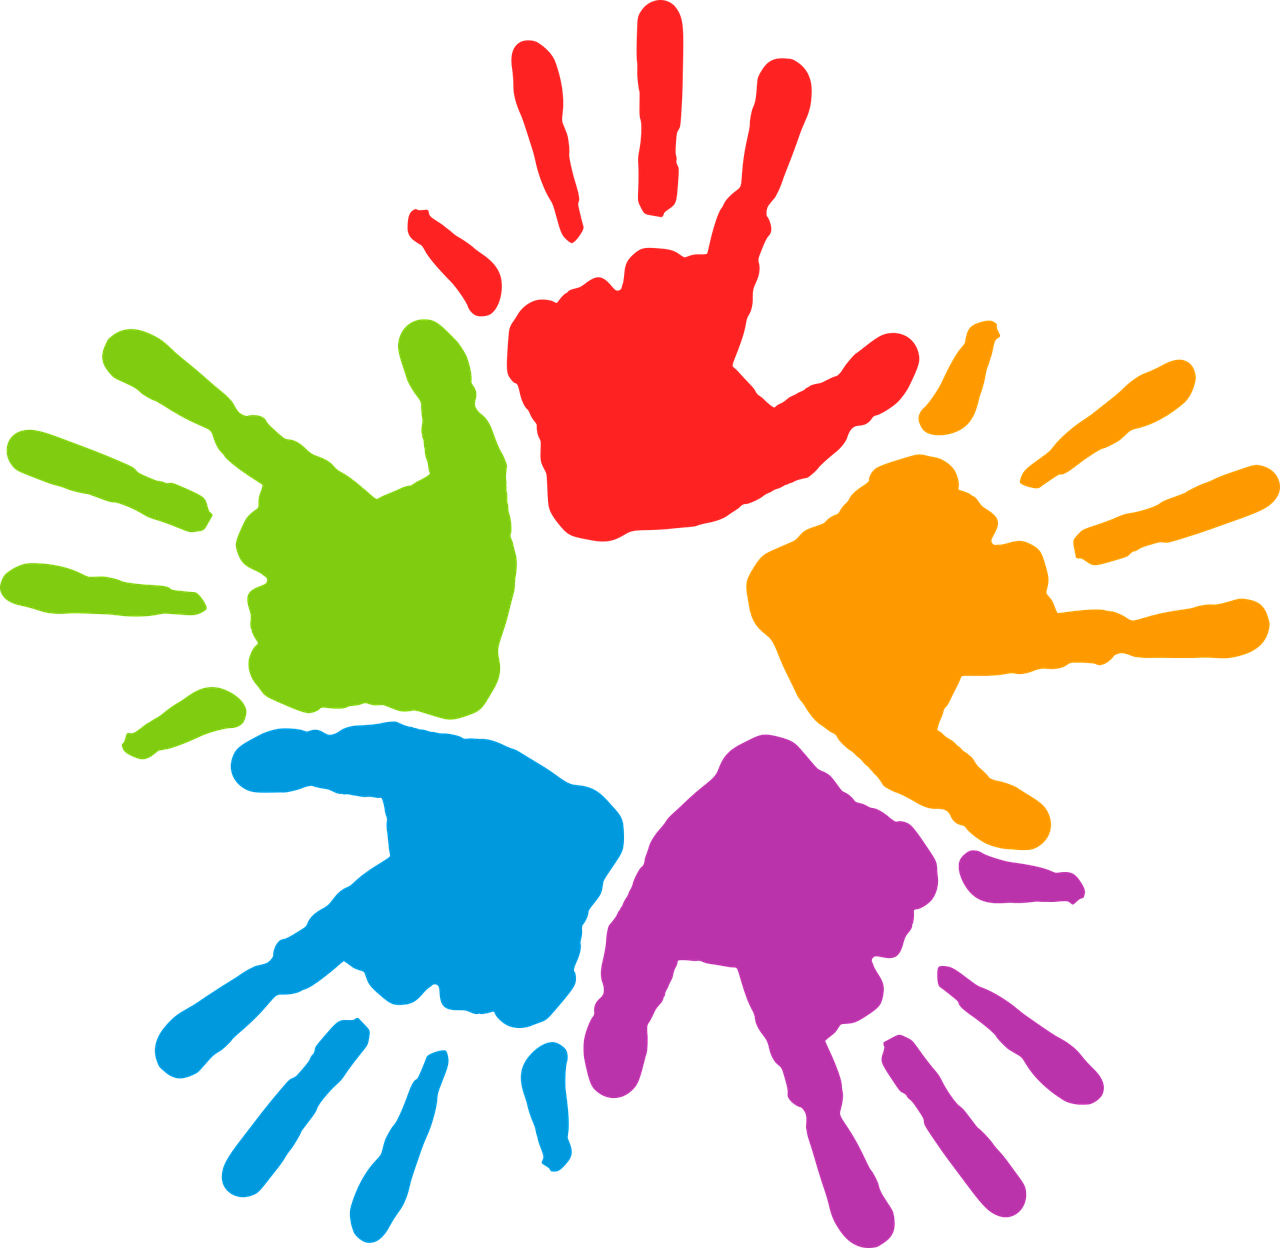 Hands clipart signing. Making diversity a priority